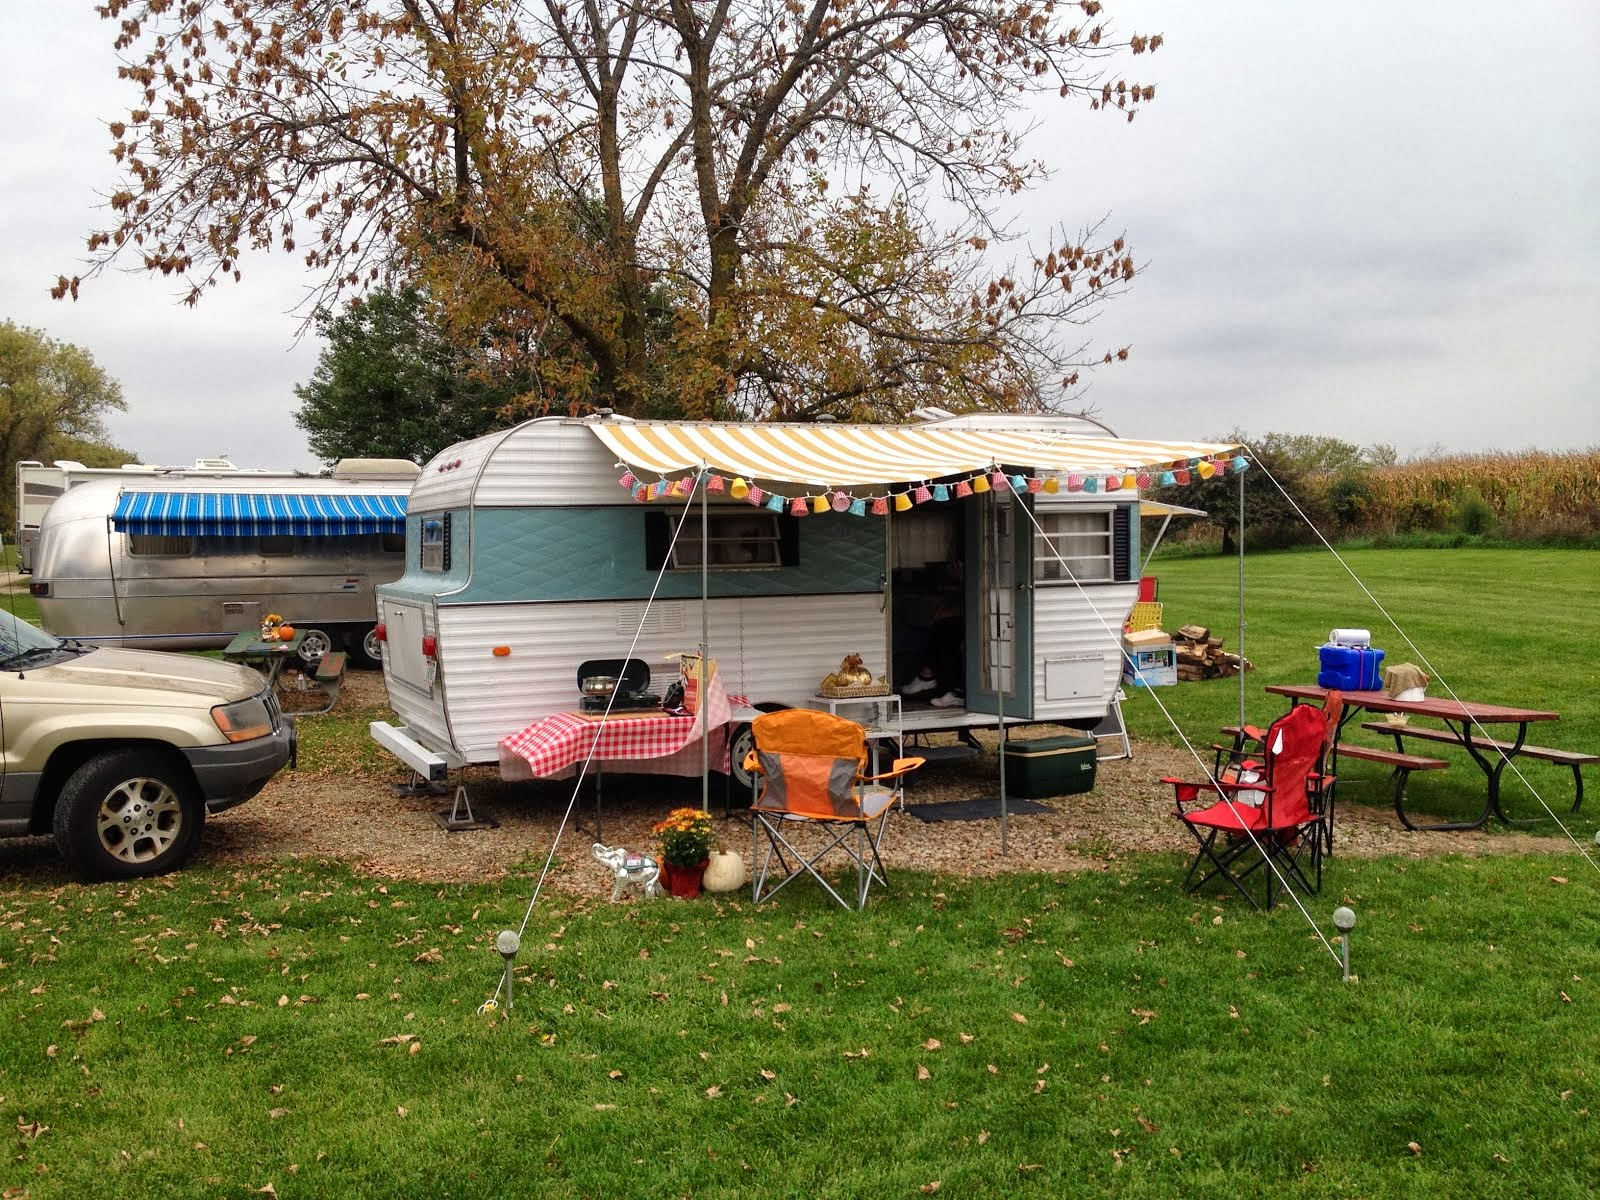 2013 Woodstock Vintage Trailer Rally